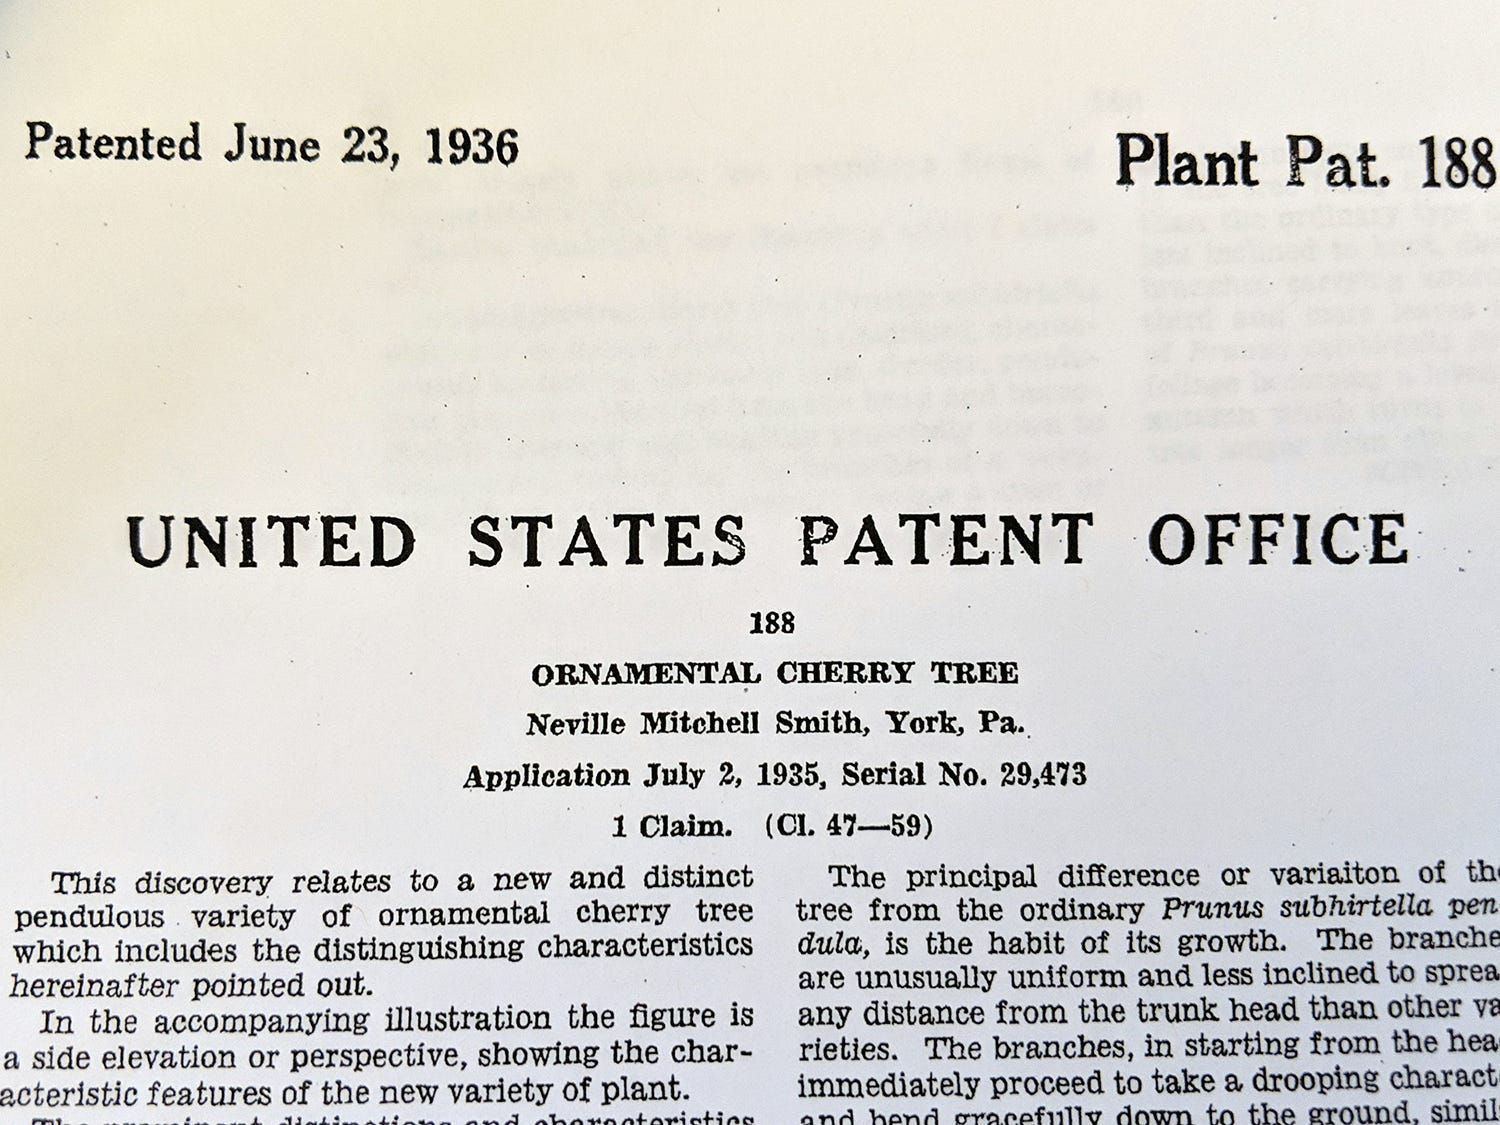 The patent for the ornamental cherry tree dated June 23, 1936.